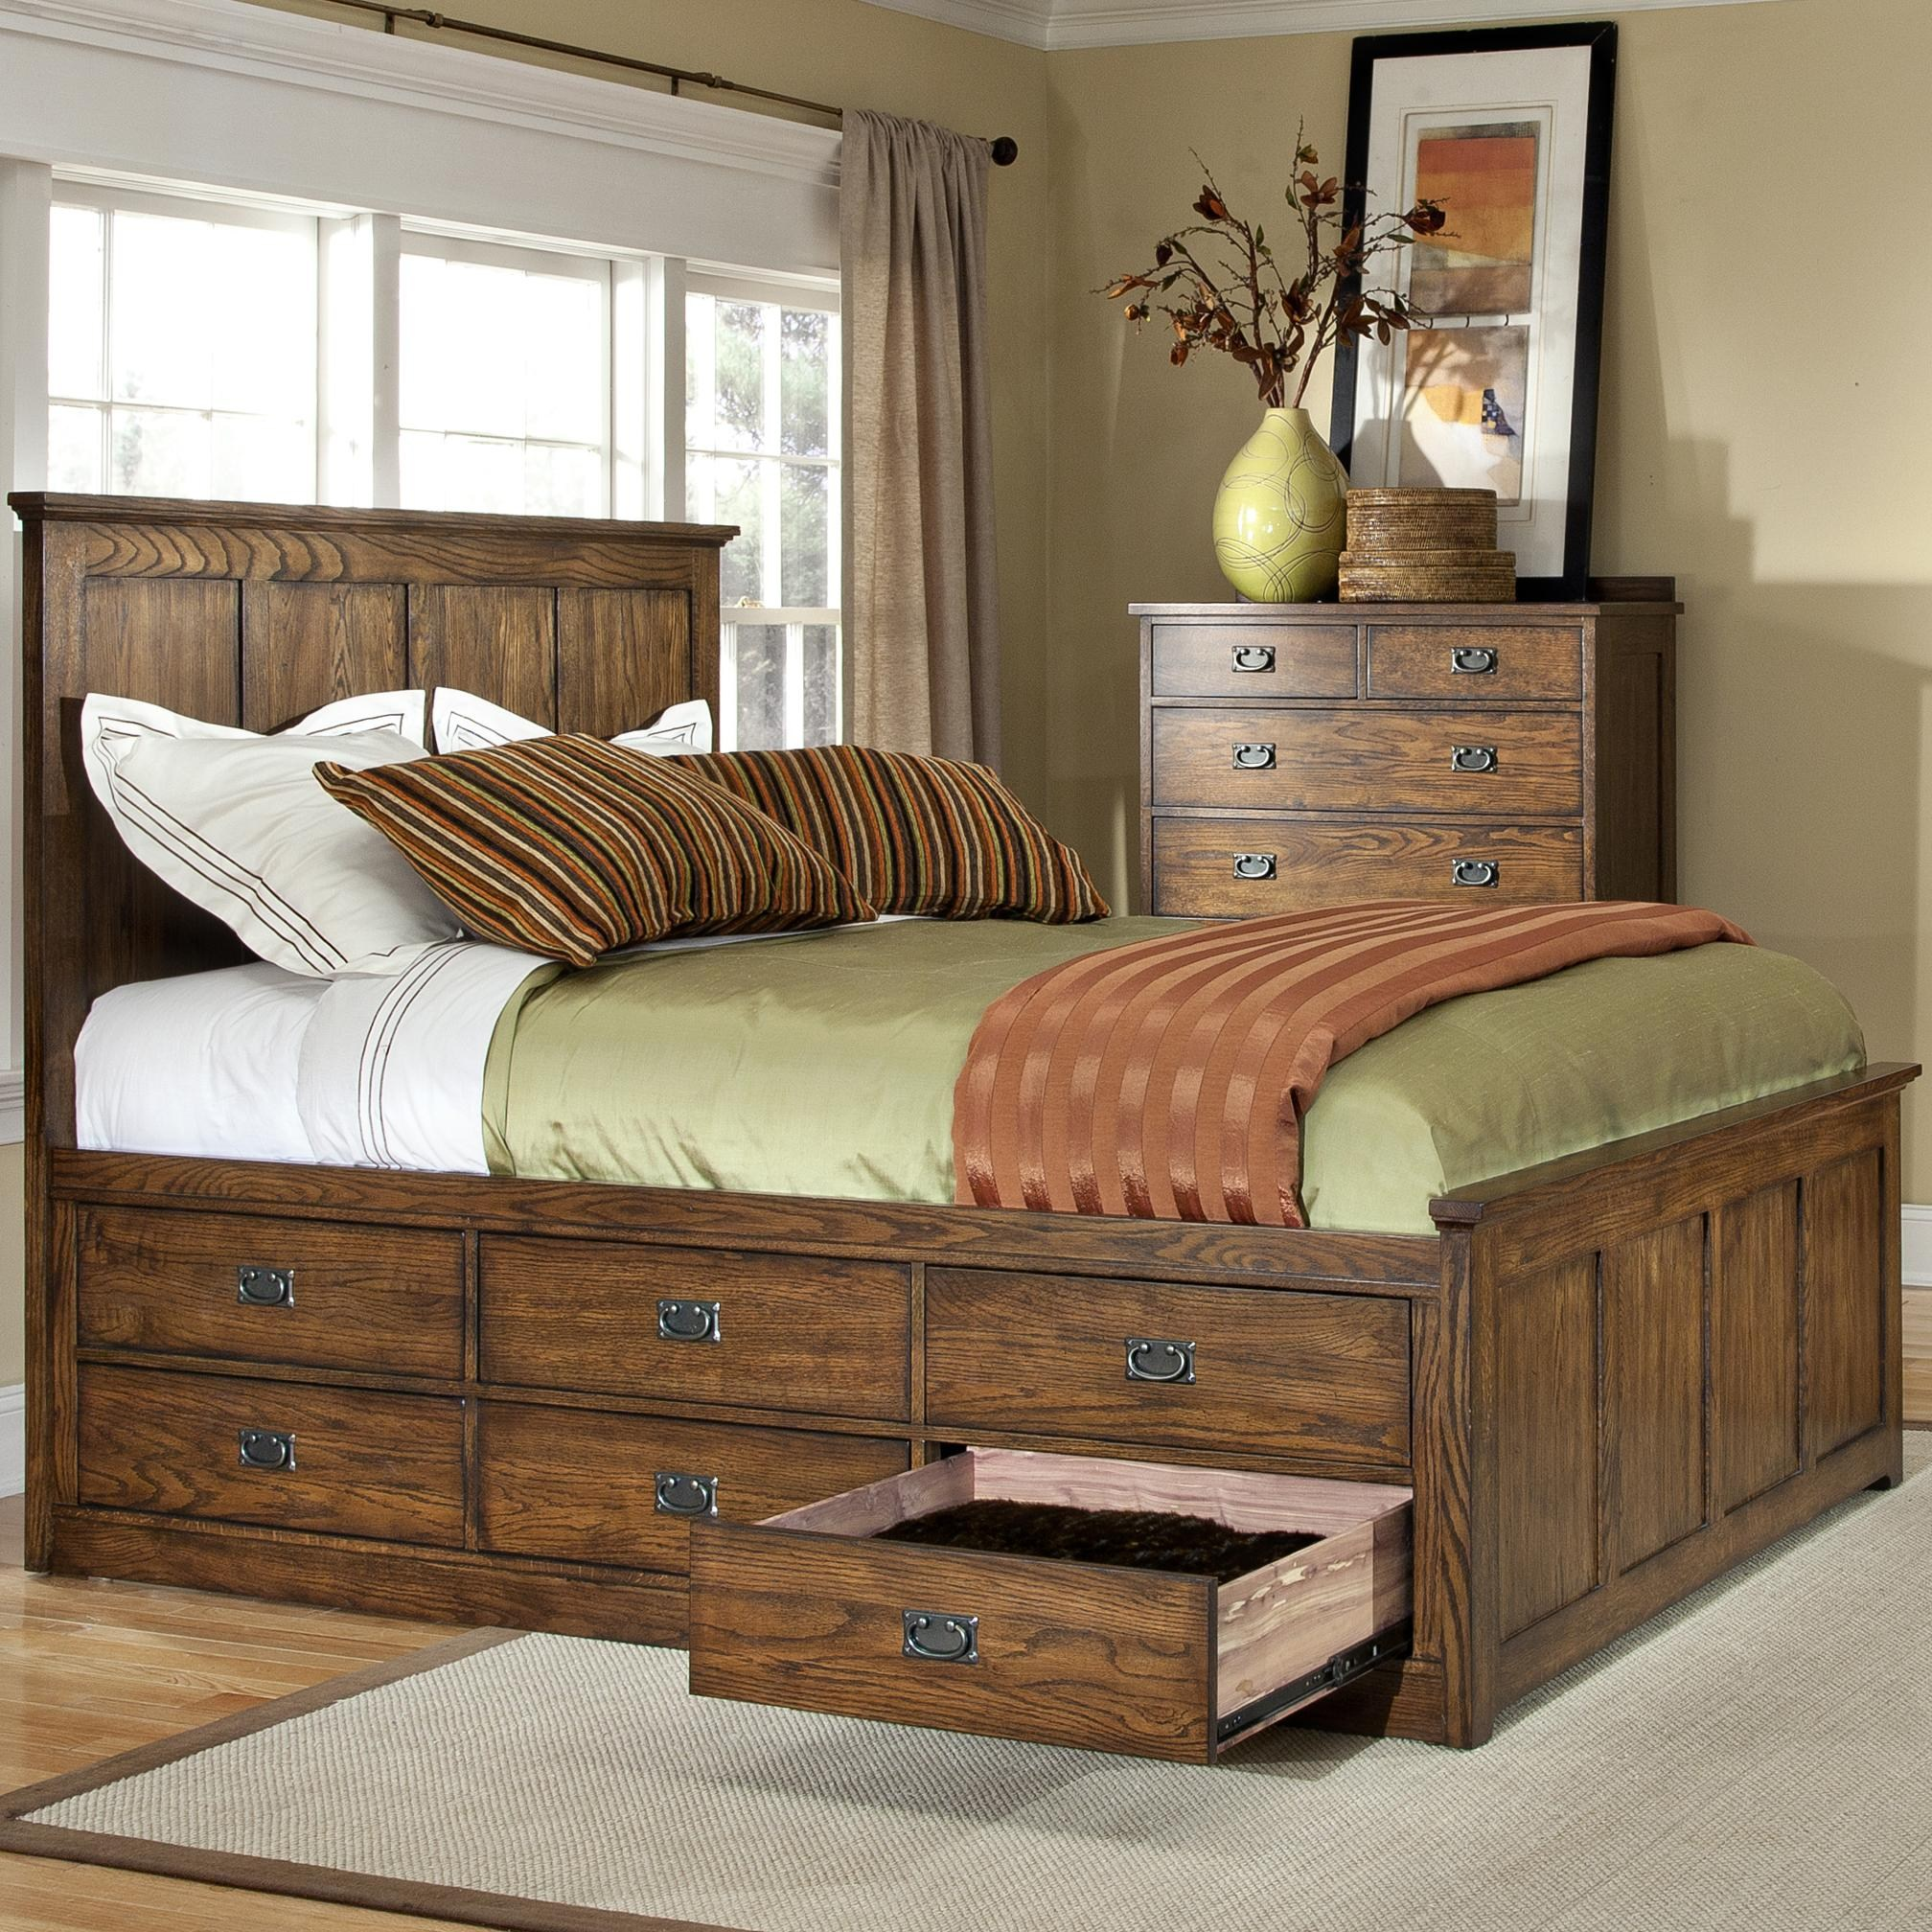 Use space under the bed sensibly and comfortably: beds with under drawer storage